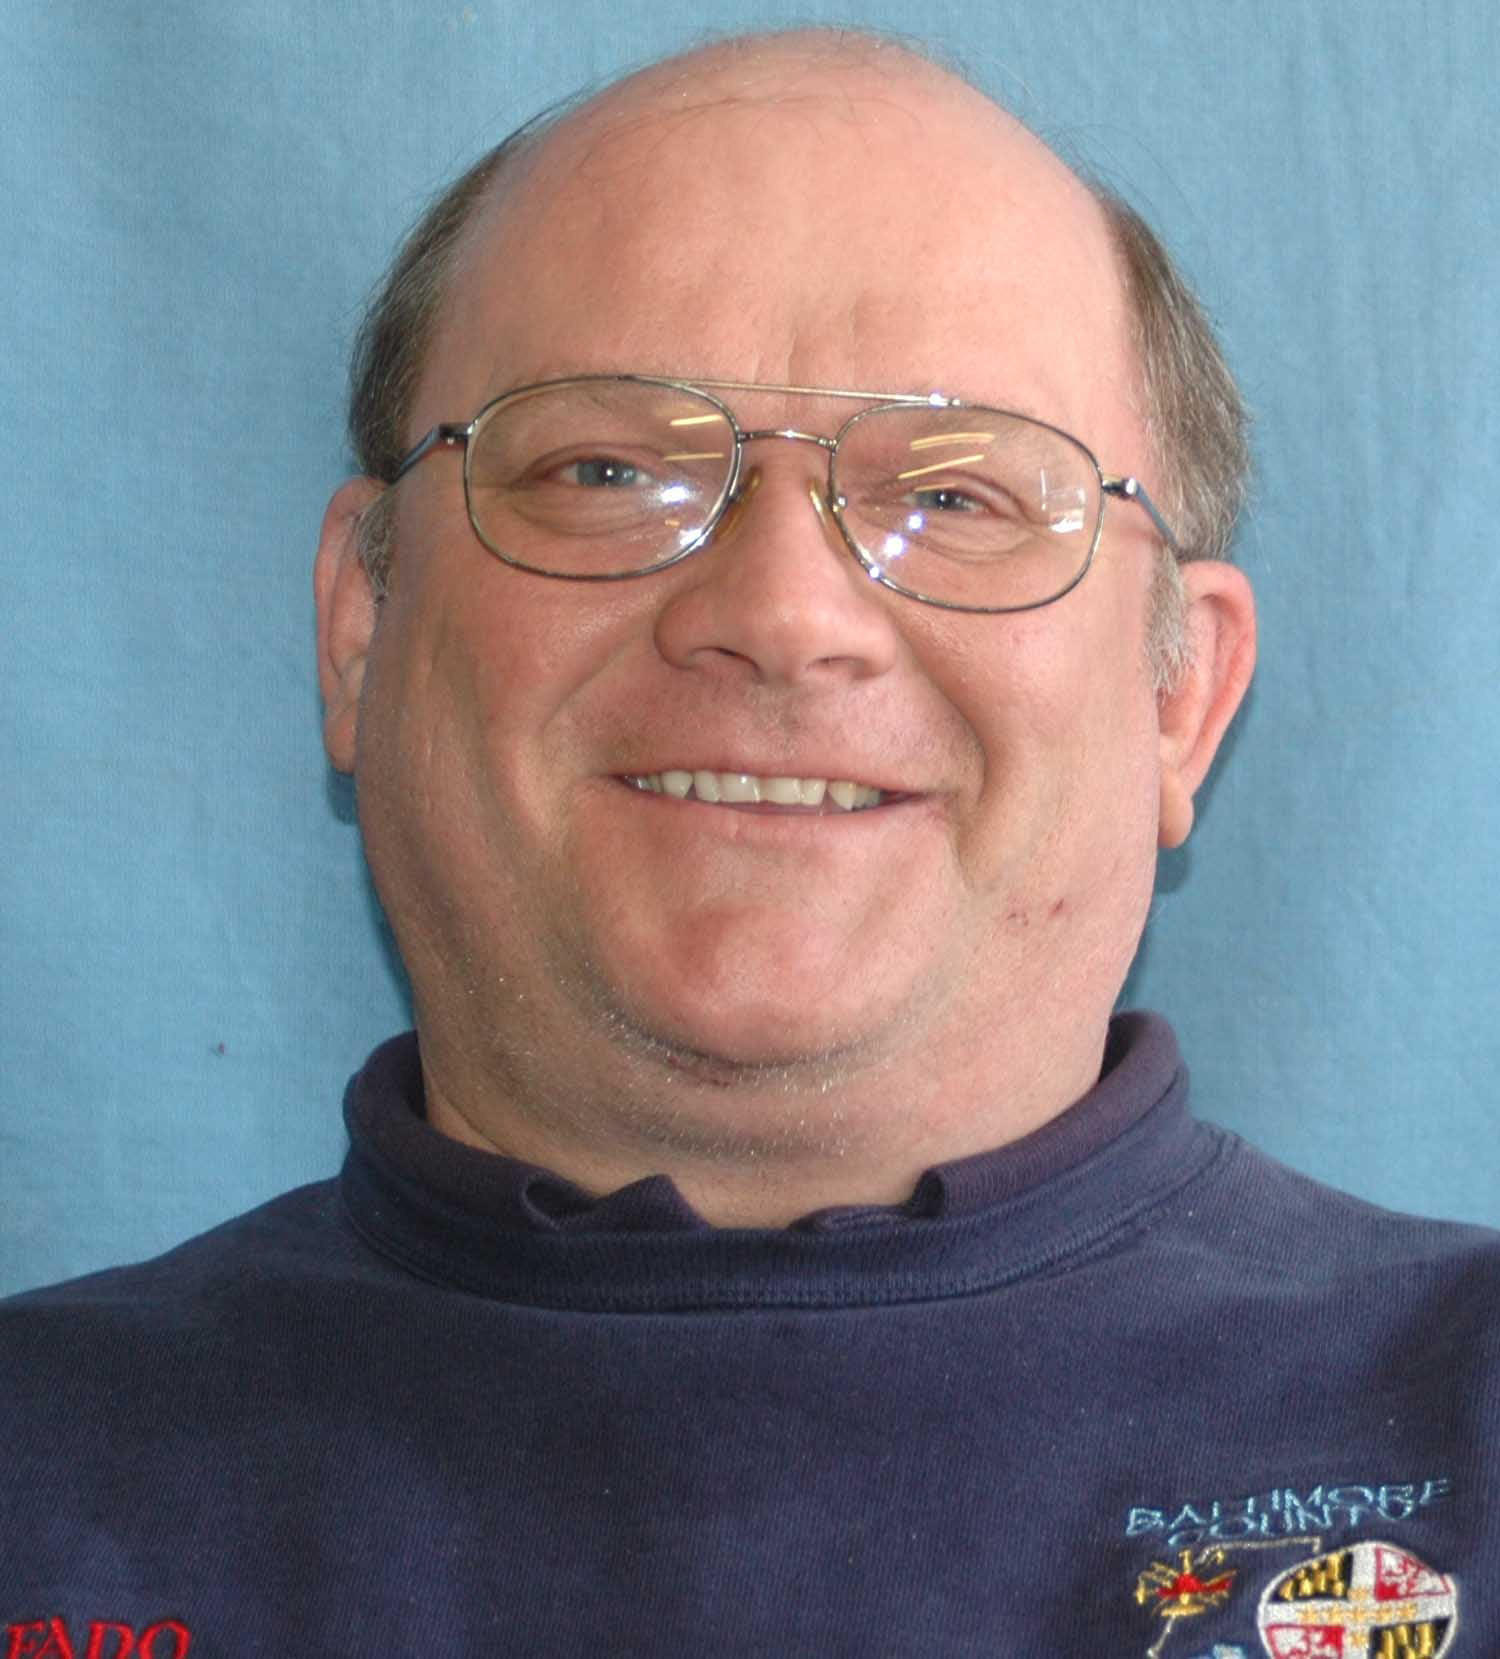 Firefighter Robert Fogle III (58) went into cardiac arrest during a training exercise this afternoon in Sparrows Point. He was transported to Johns Hopkins Bayview Medical Center where he was pronounced deceased.